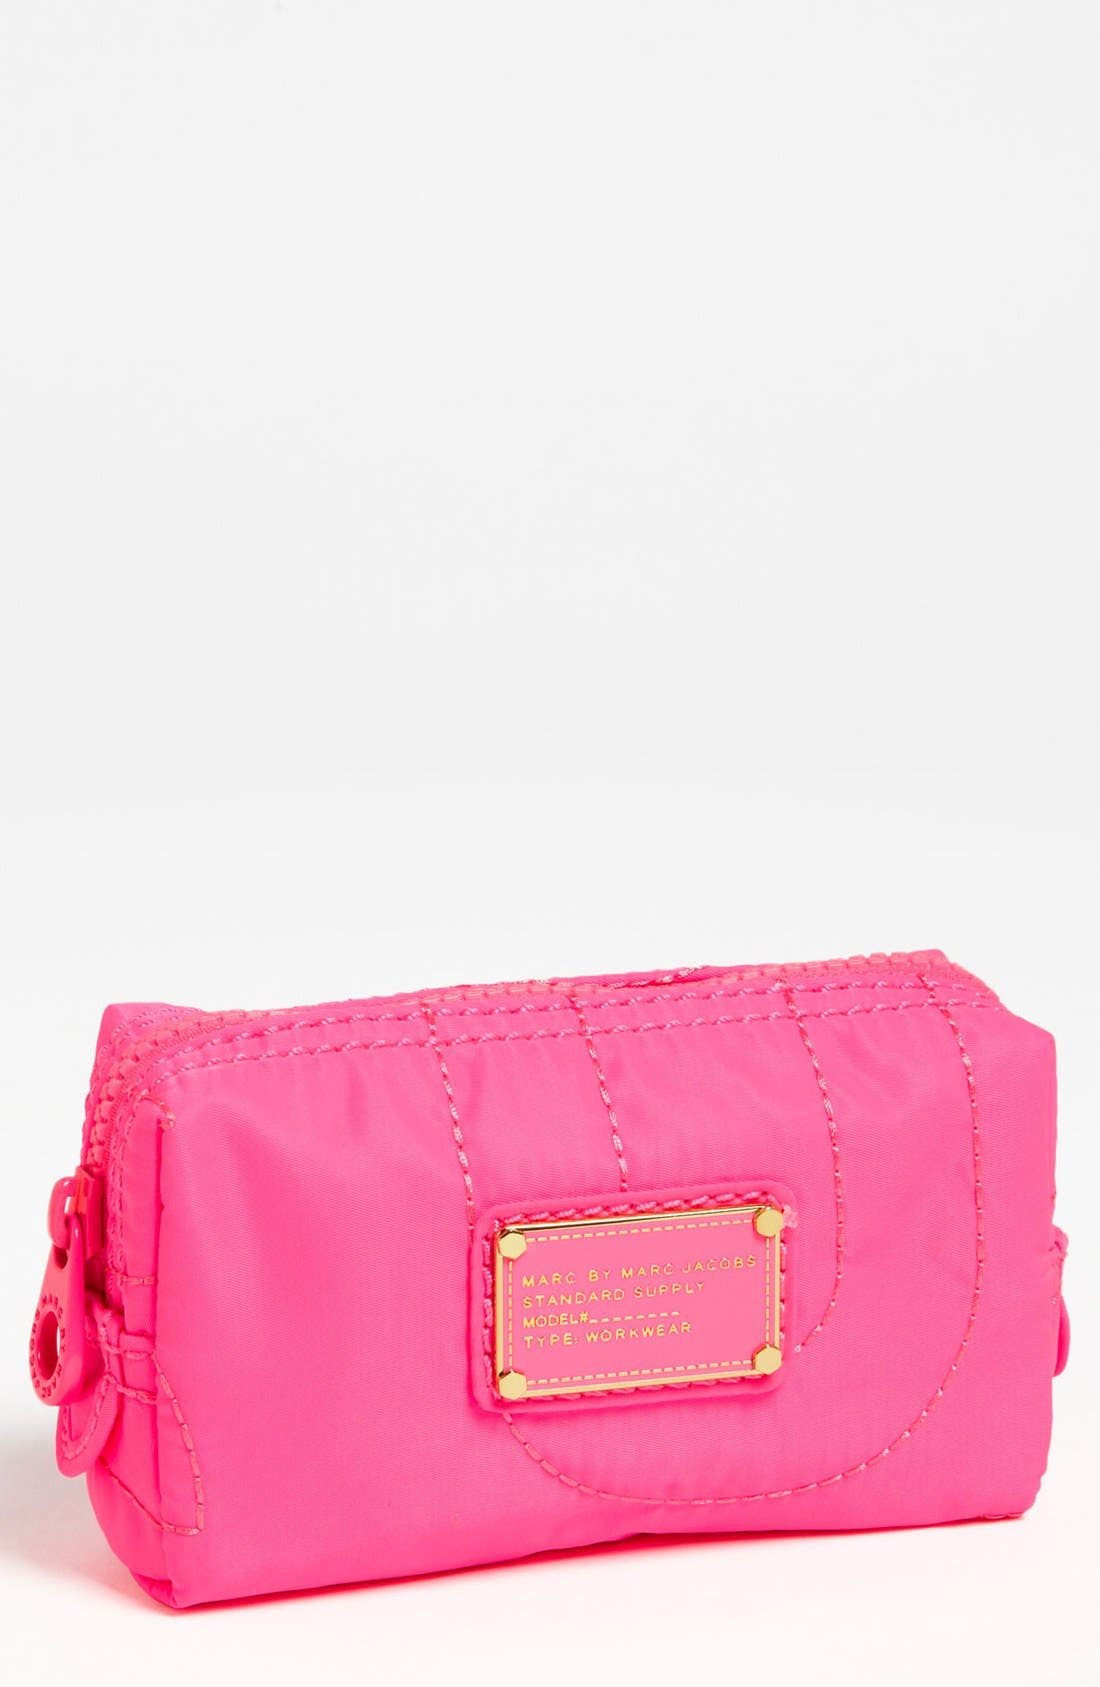 MARC BY MARC JACOBS 'Pretty Nylon' Cosmetics Case, Main, color, 676